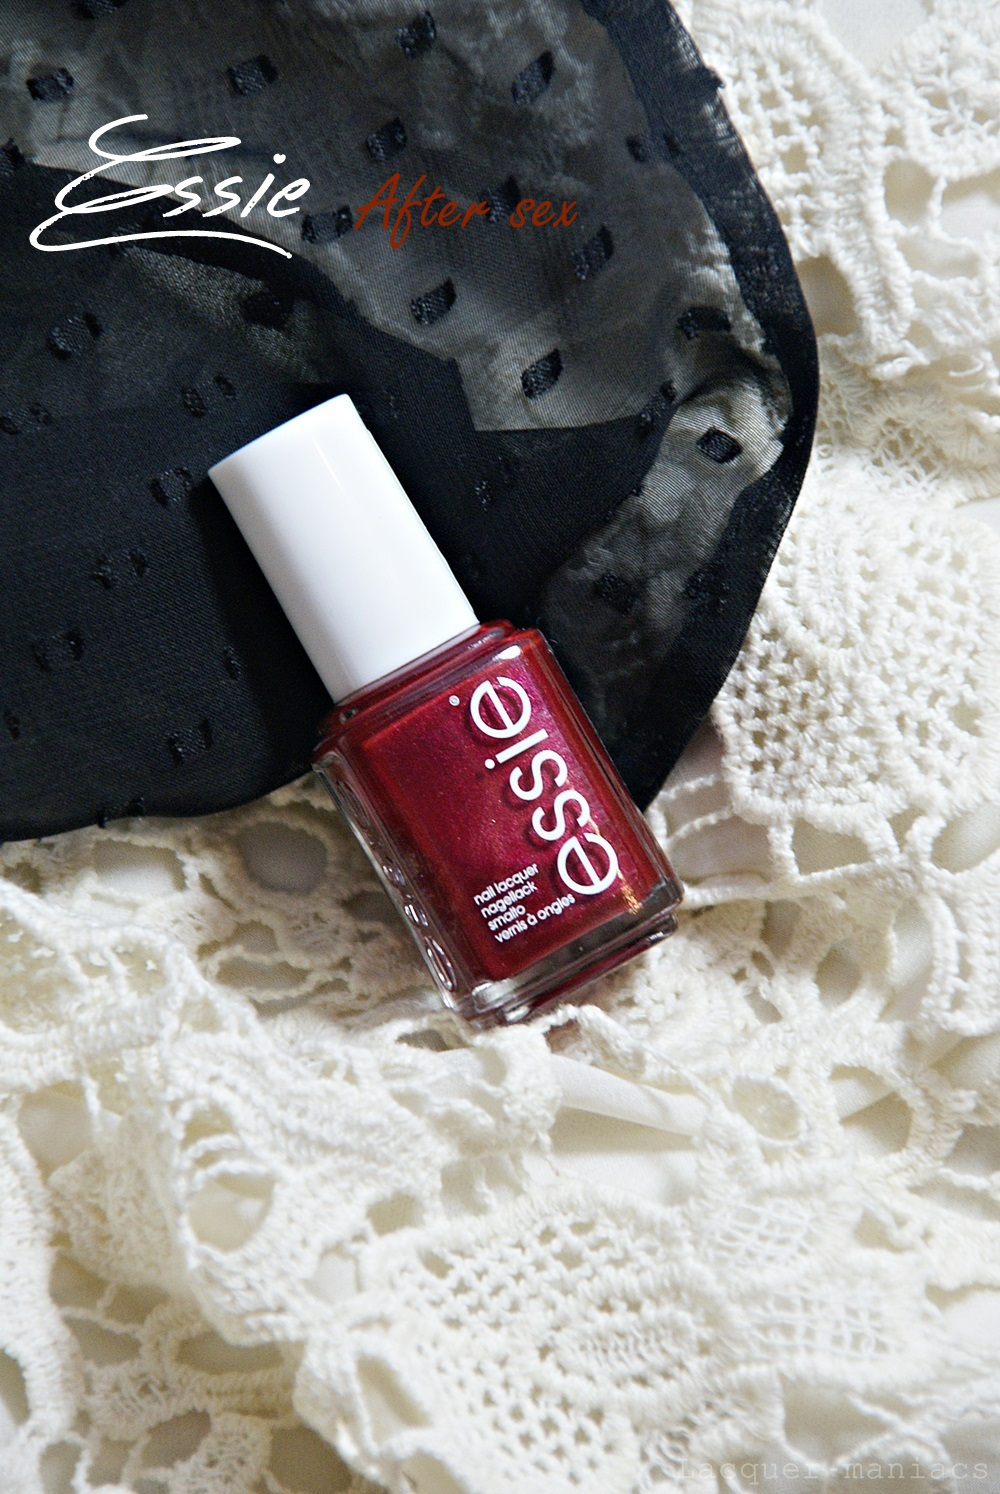 Essie, After sex